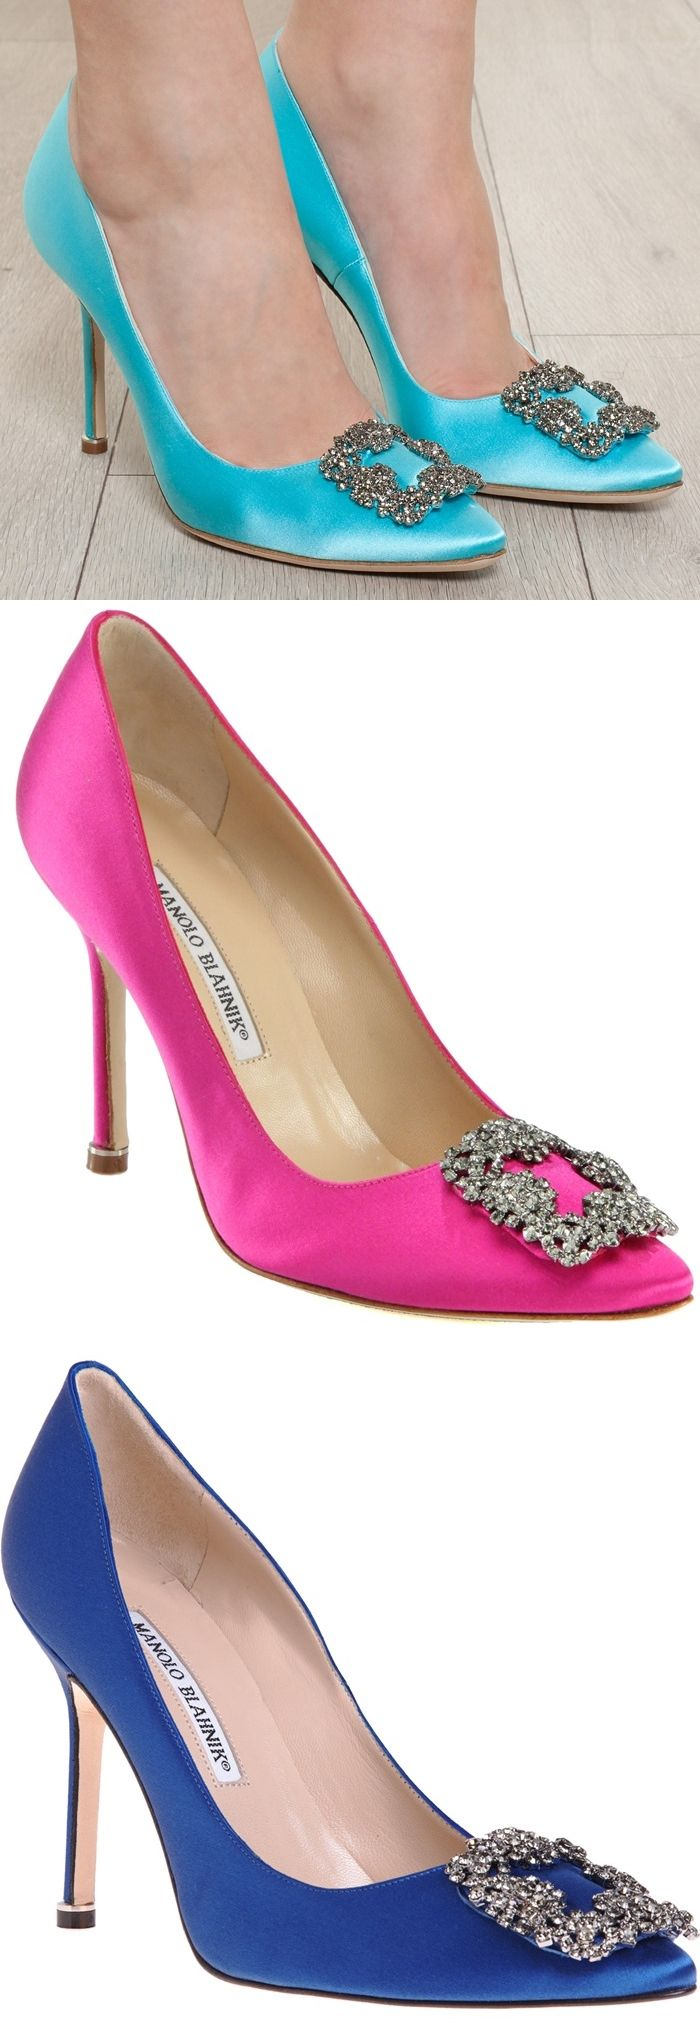 559 best manolo blahnik images on pinterest for Shoe designer manolo blahnik